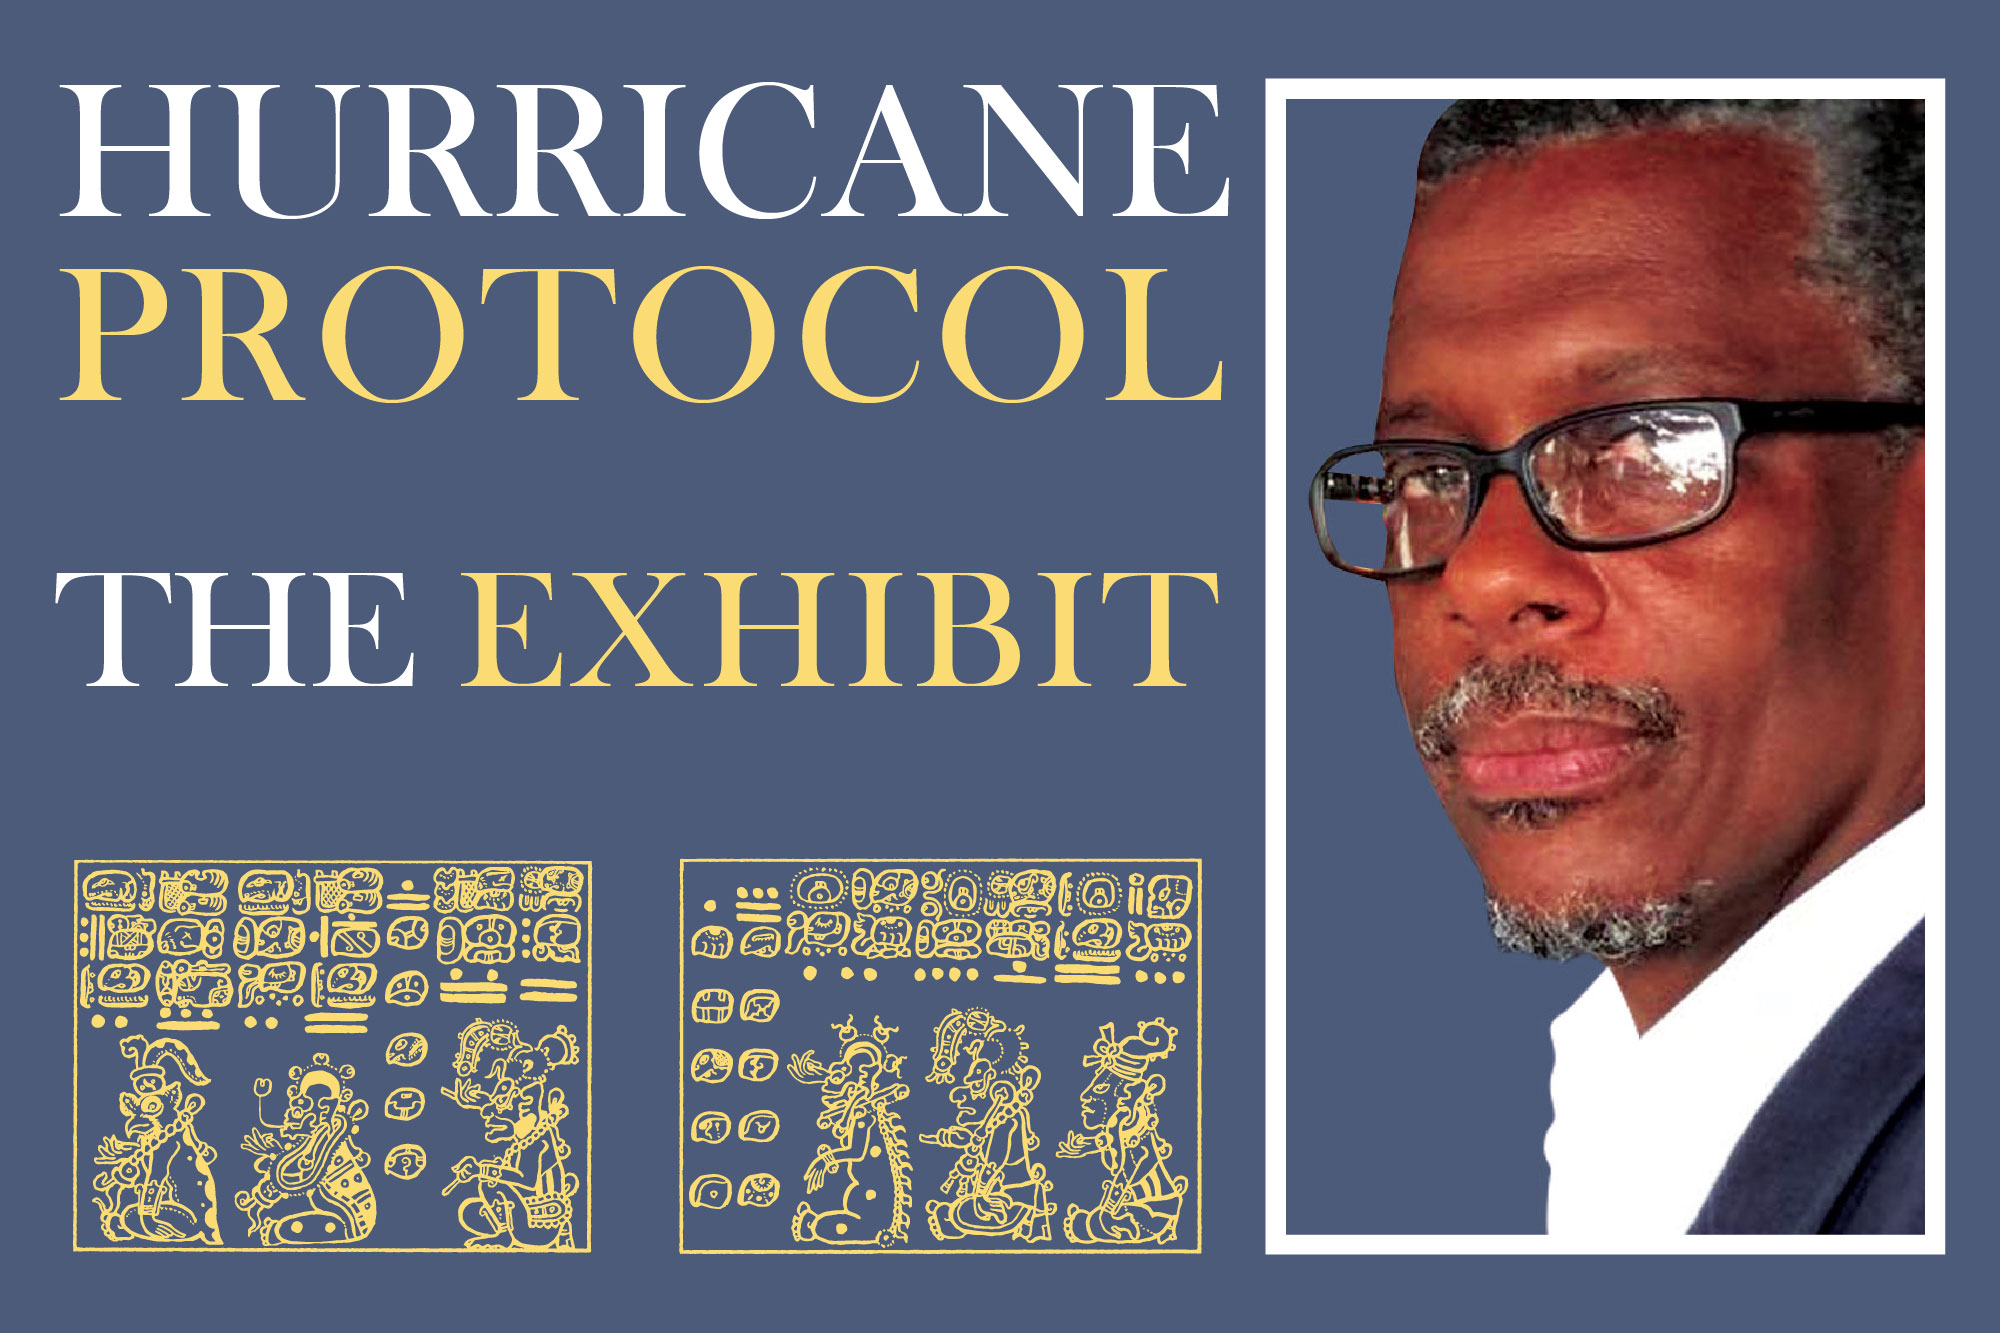 Hurricane Protocol Exhibit